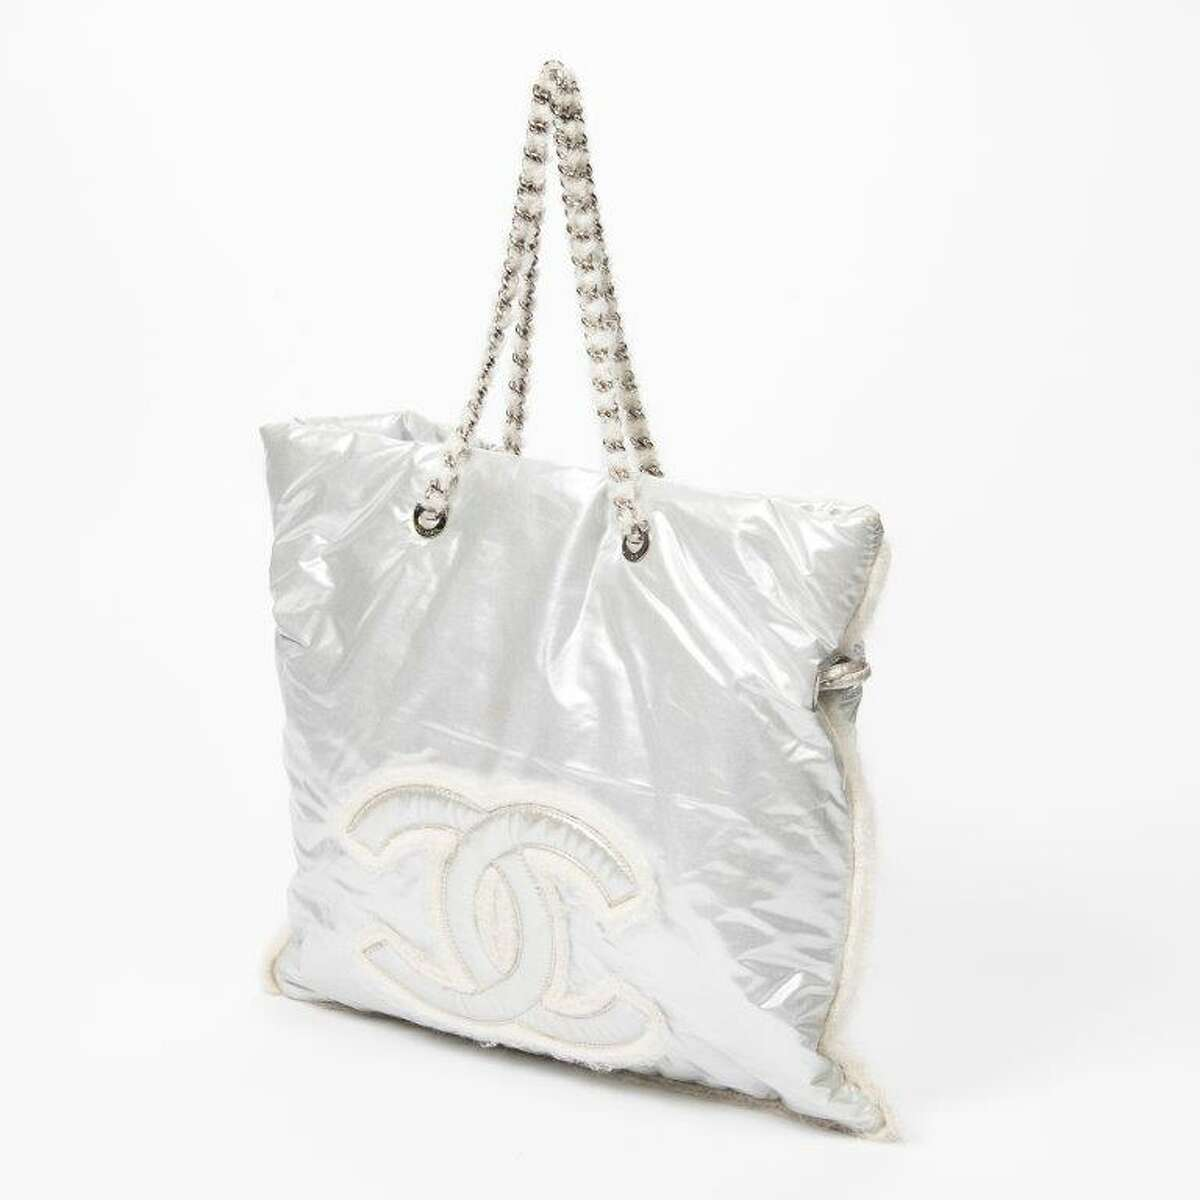 This white Chanel handbag will be included in the Dec. 5 luxury goods auction at Gallery Auctions.